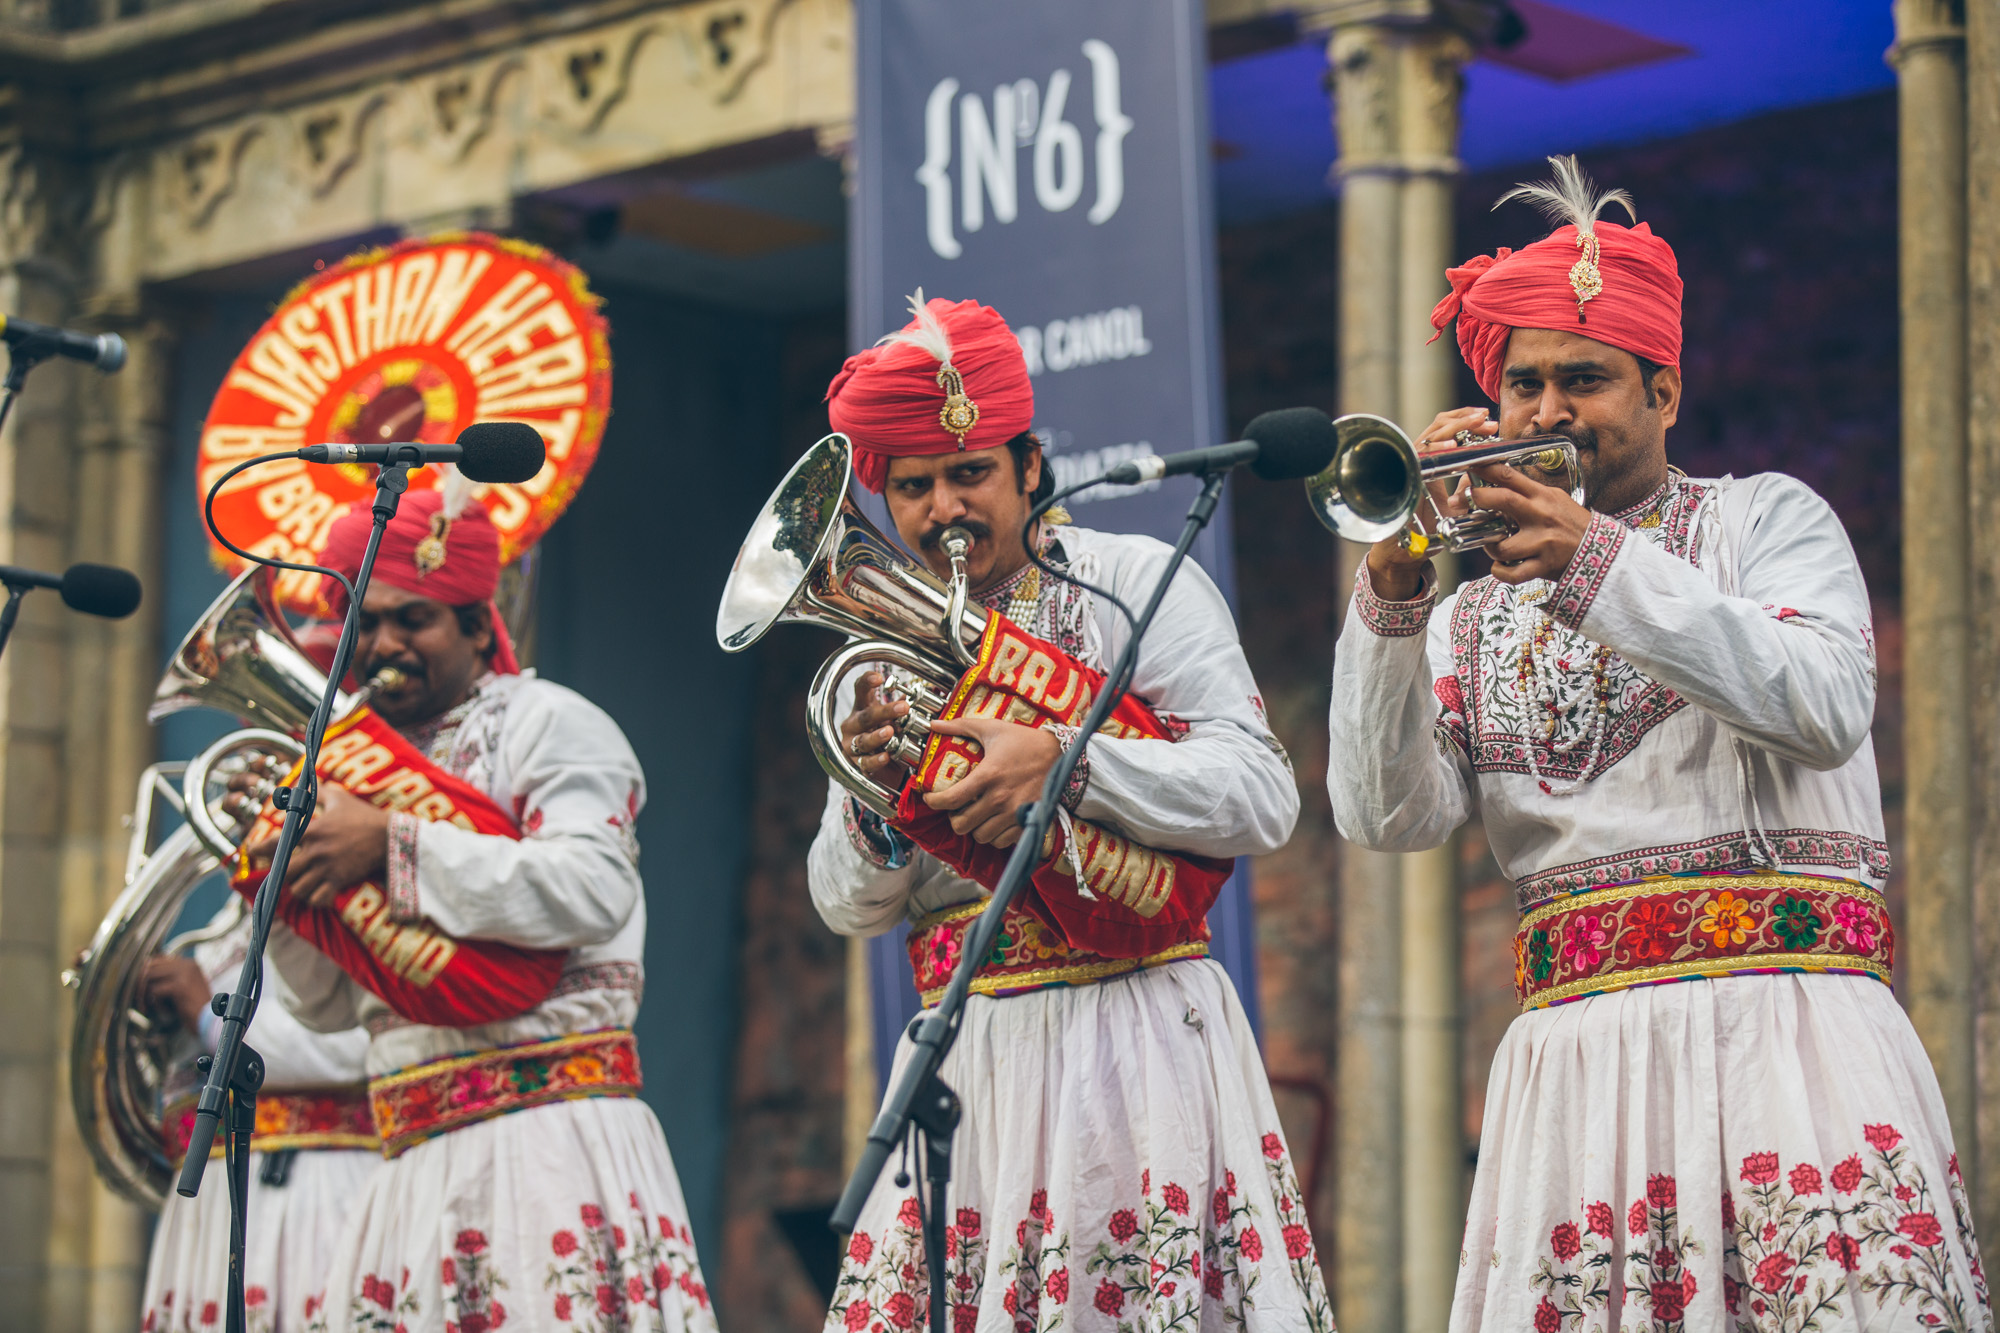 Rajasthan Heritage Brass Band, Festival No. 6 (Credit: Andrew Whitton)